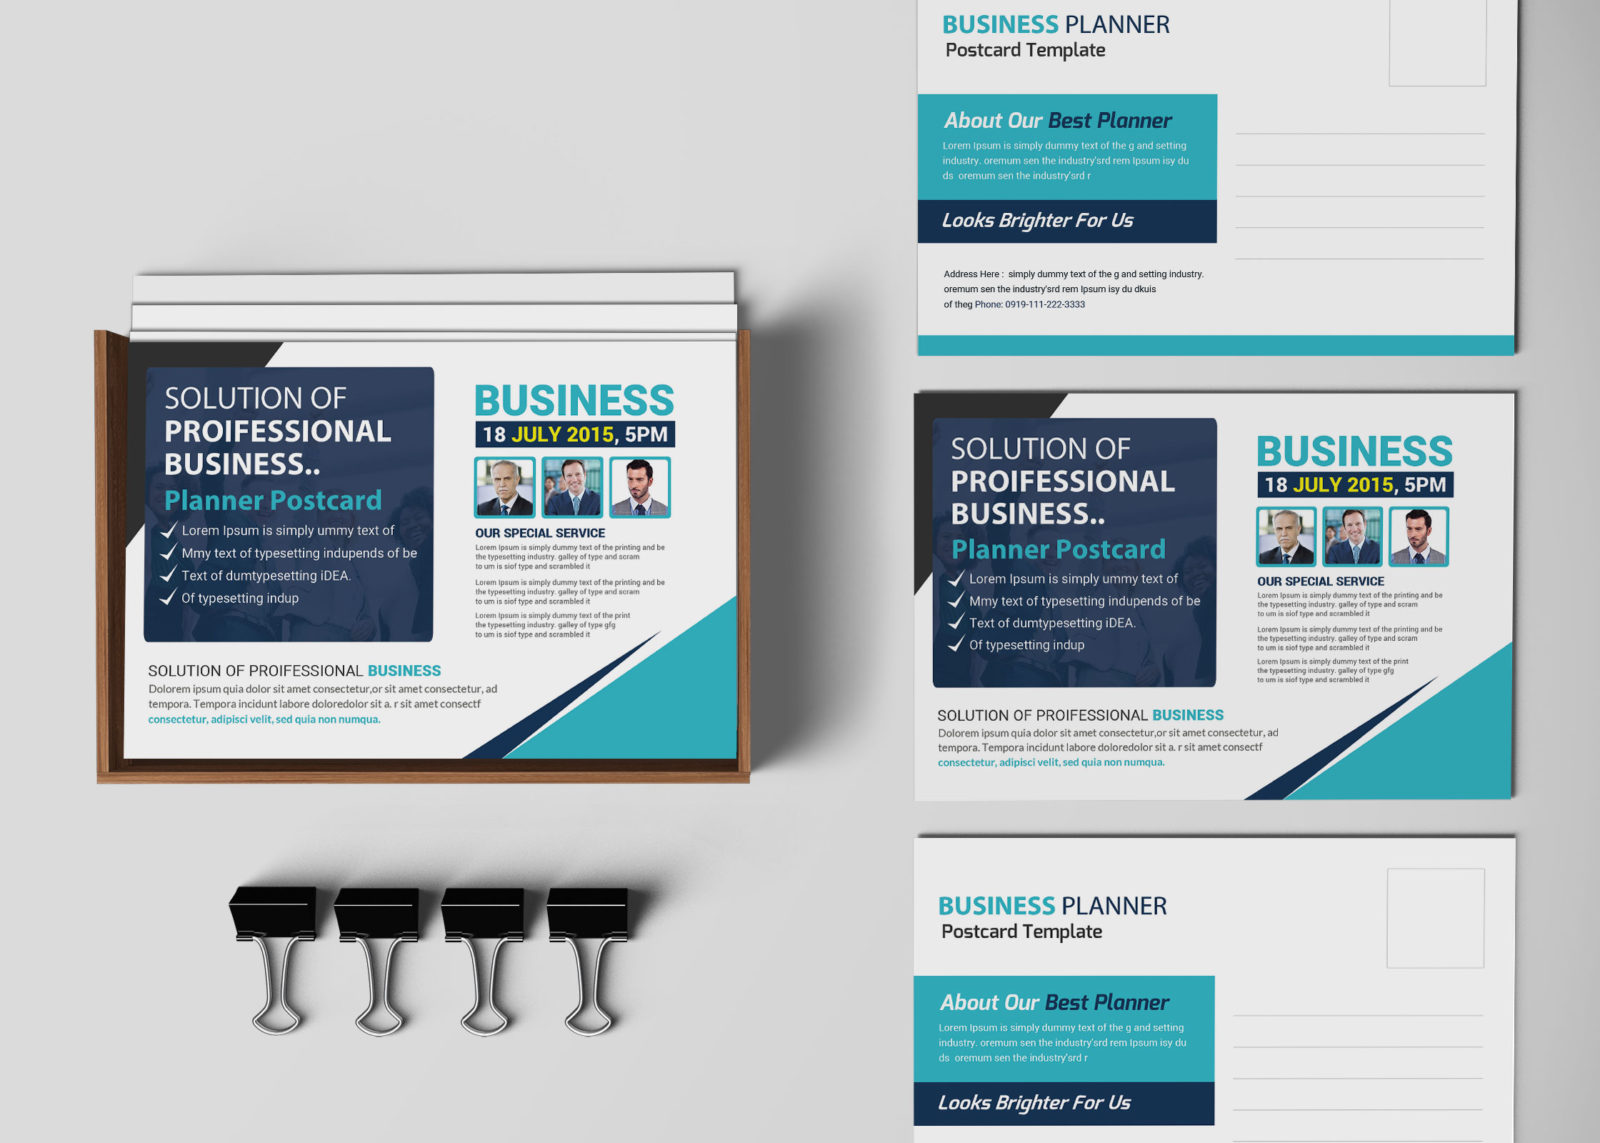 Professional Business Postcard Design Template